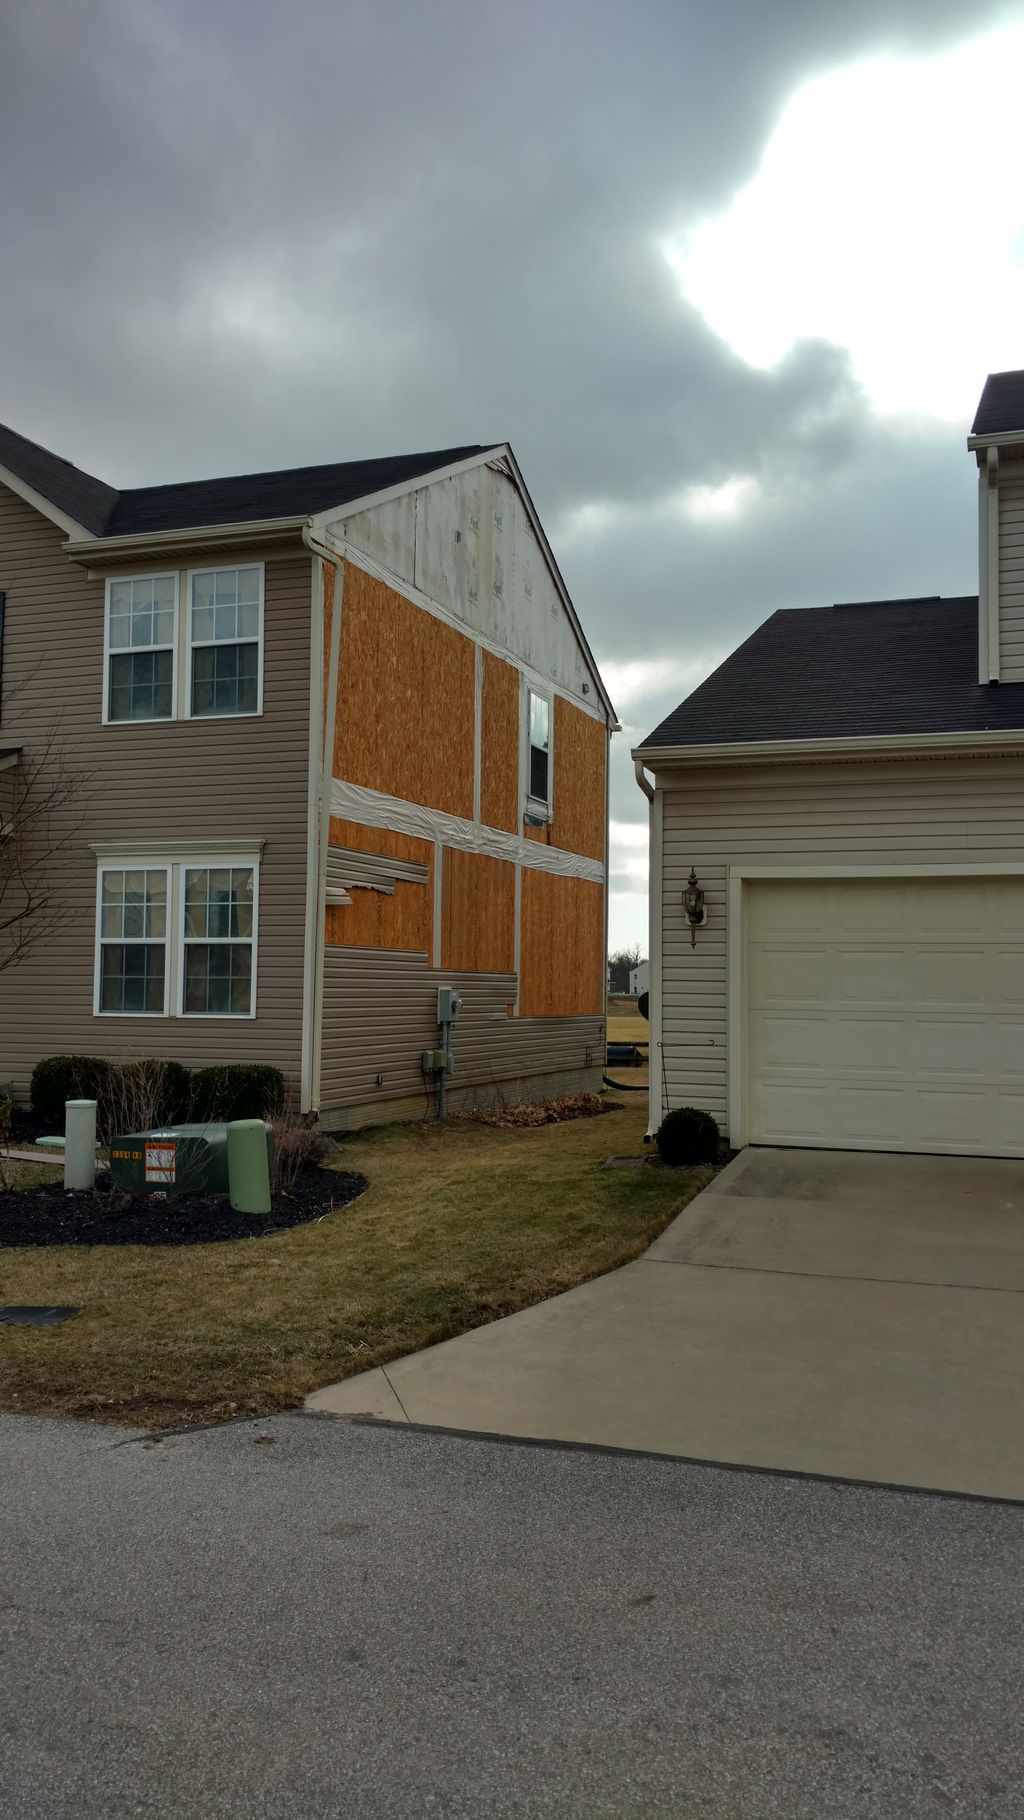 Siding repair from wind damage